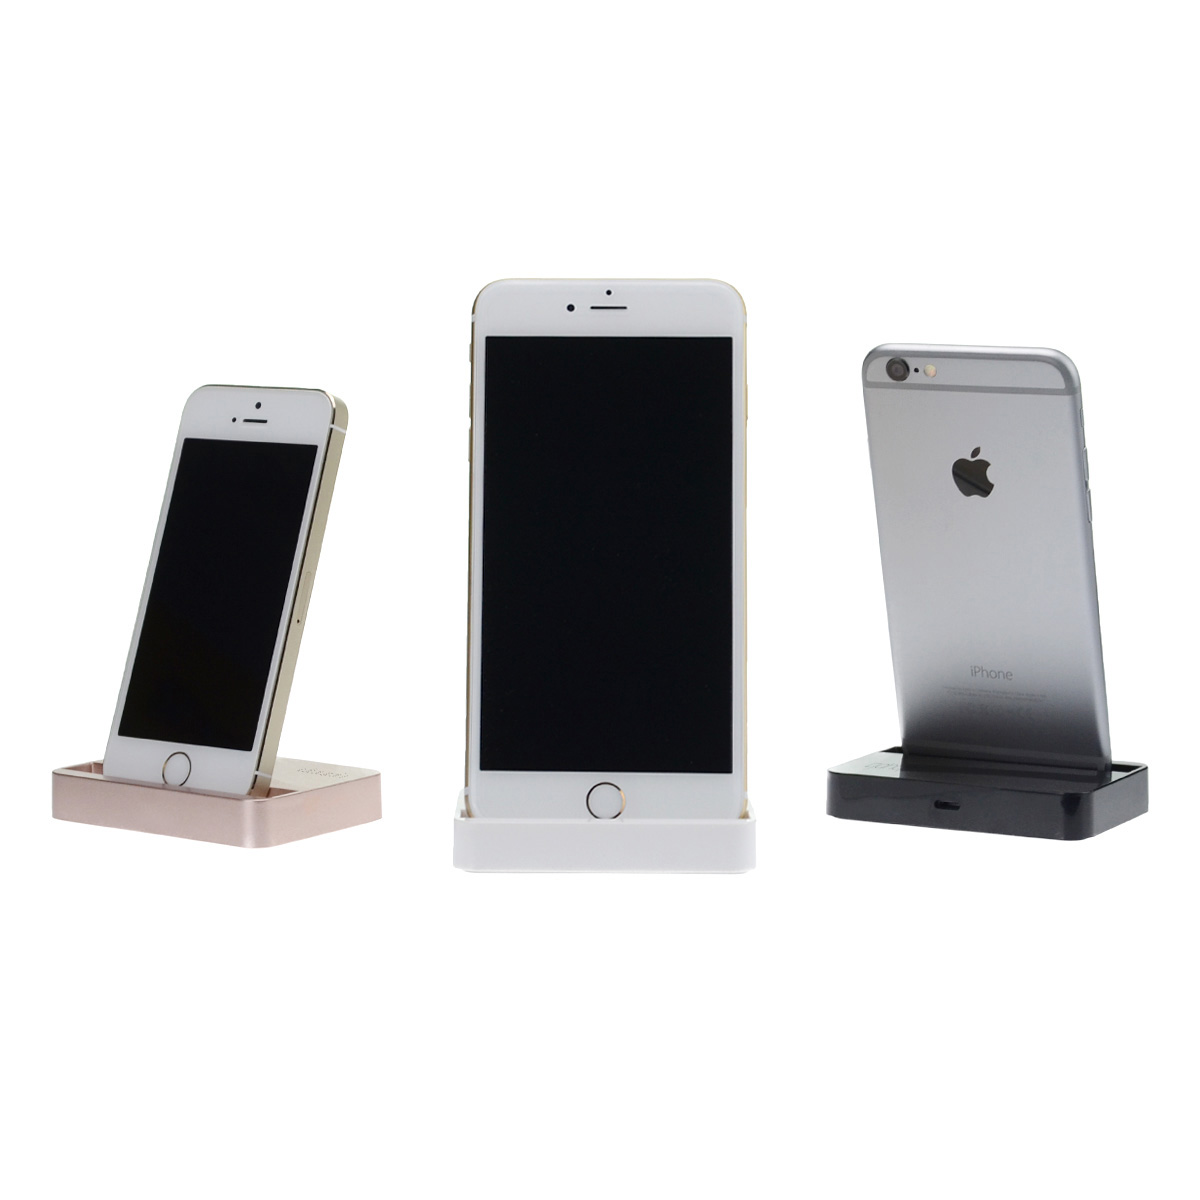 dock docking station iphone 6 6s plus 5 5c 5s se charging. Black Bedroom Furniture Sets. Home Design Ideas